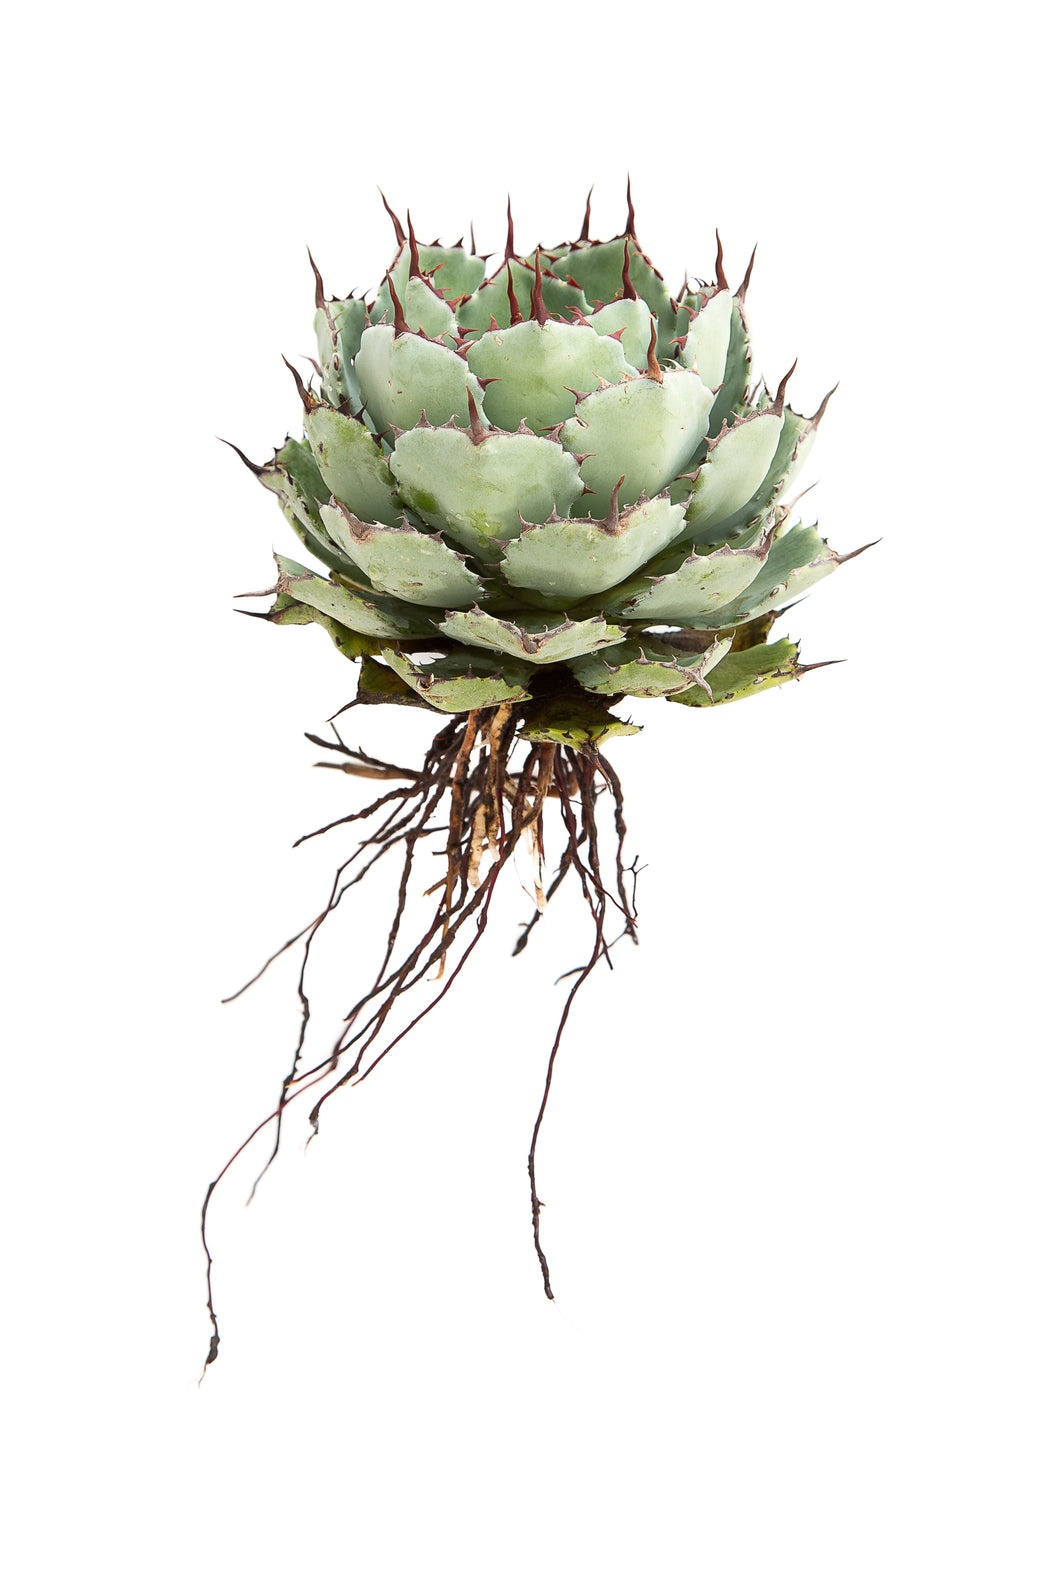 Agave Potatorum I